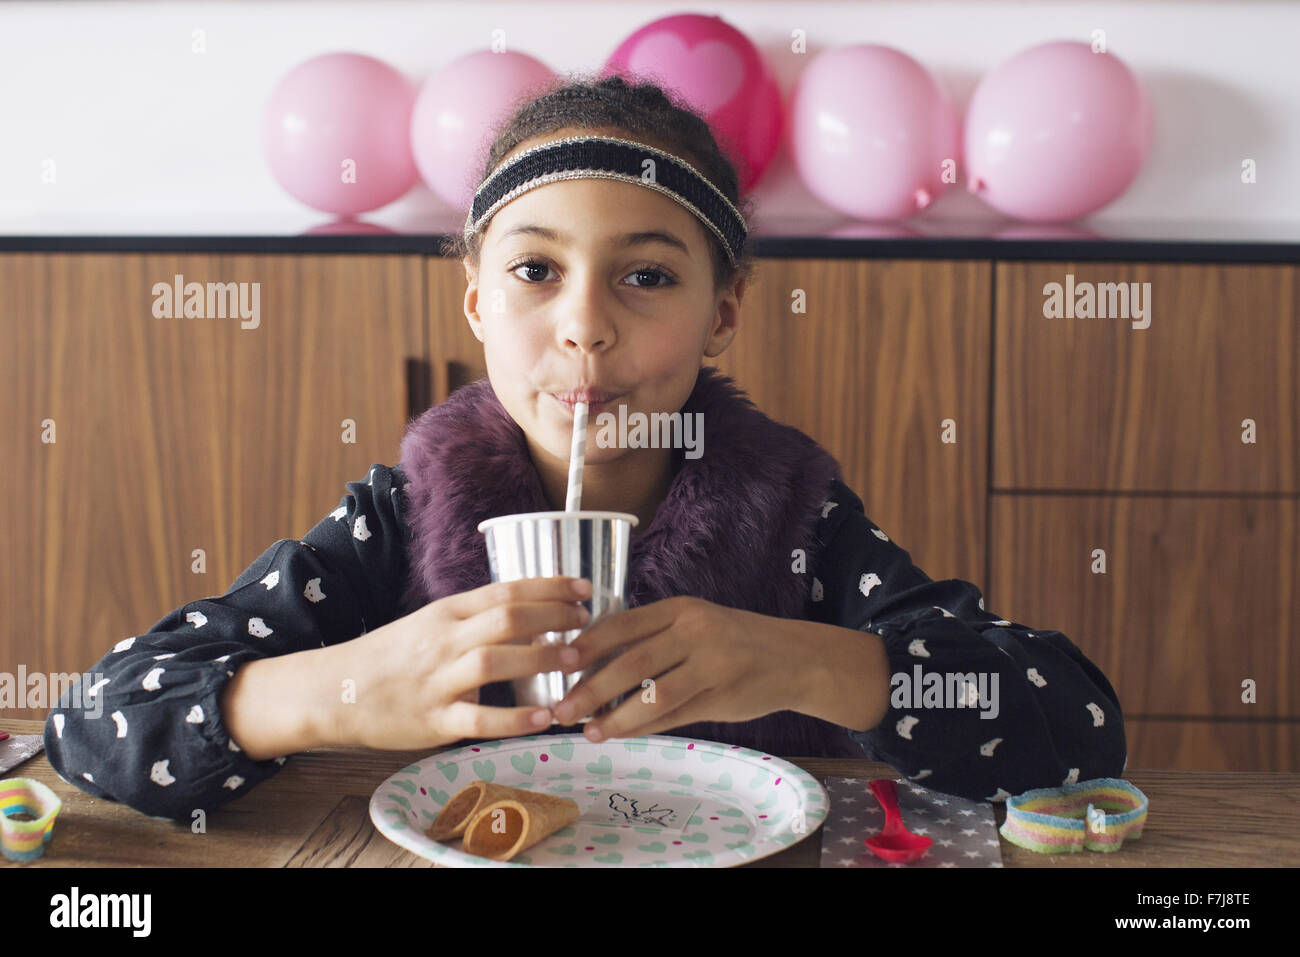 Girl drinking through a straw - Stock Image